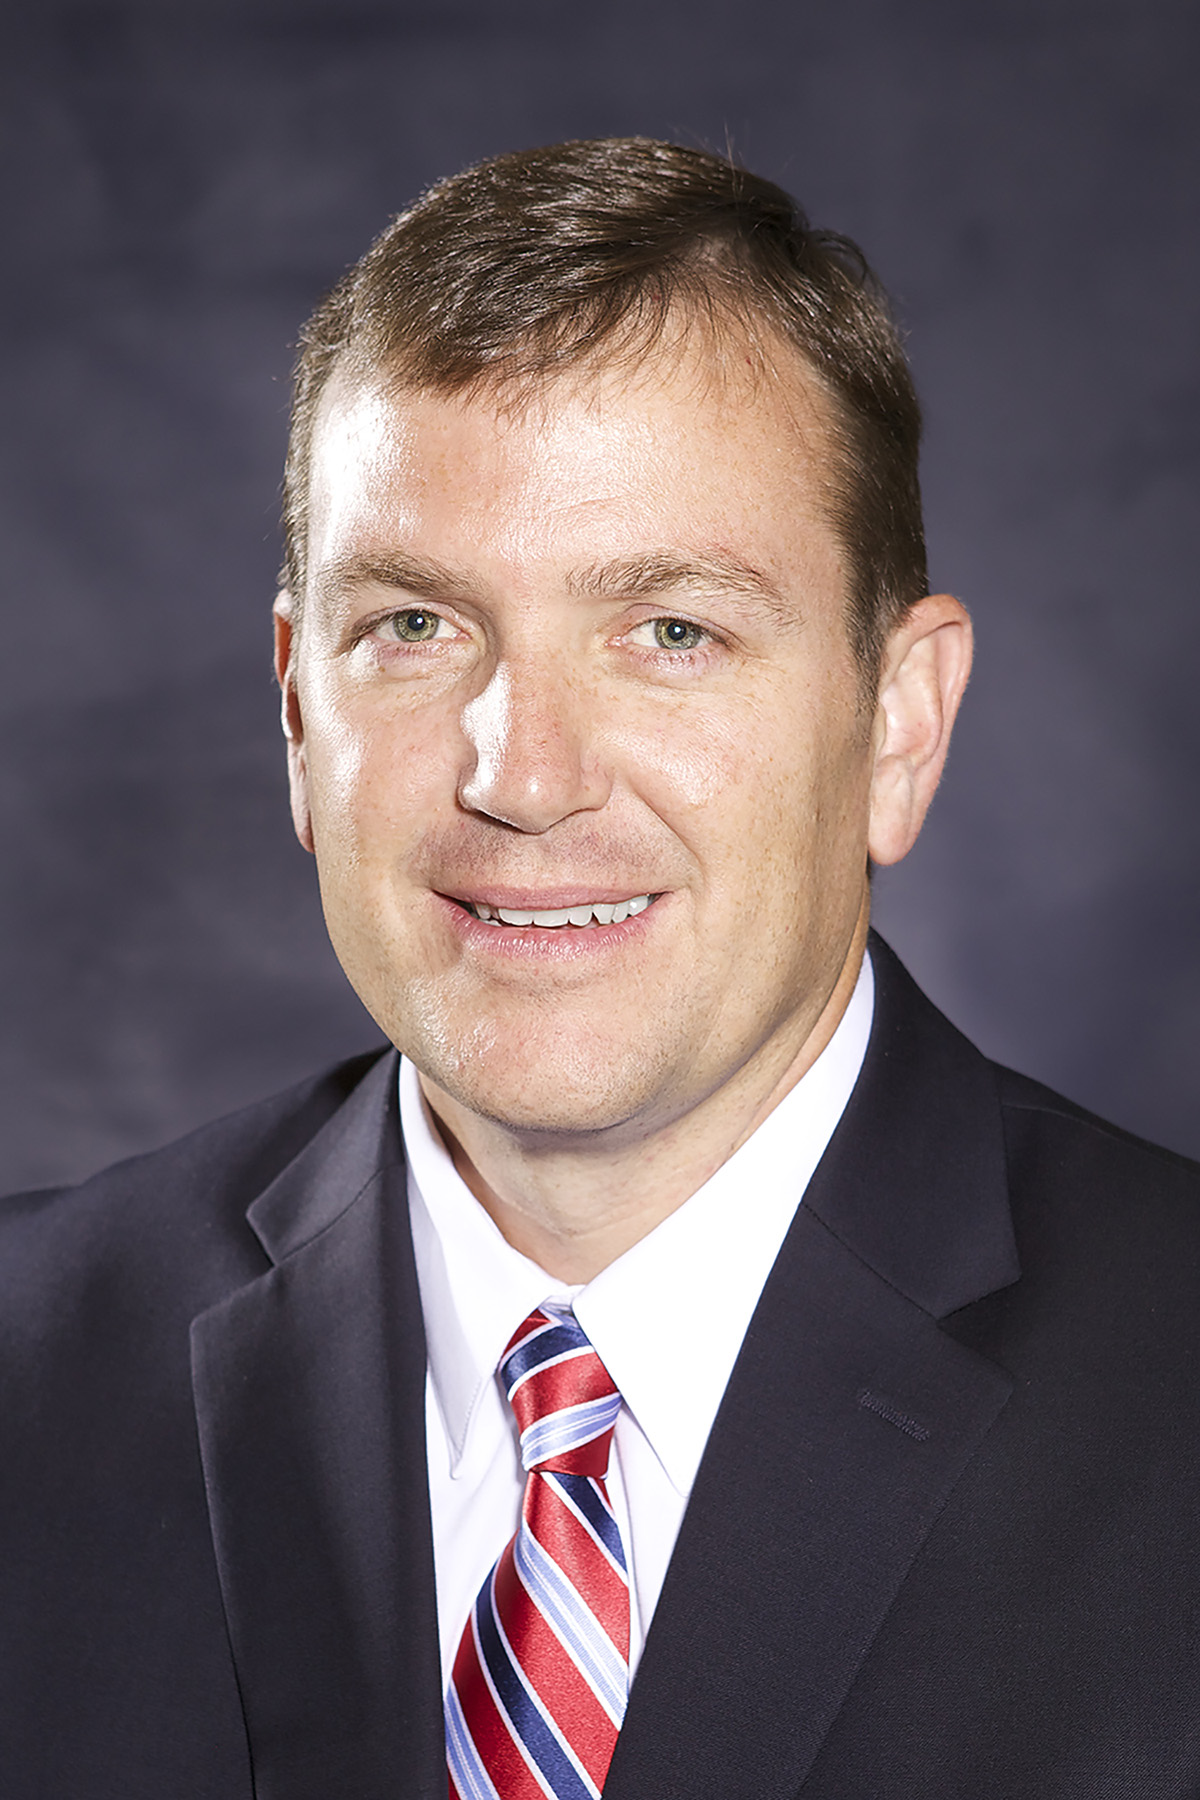 Dixie State University President , location and date unspecified | Photo courtesy of Dixie State University, St. George News